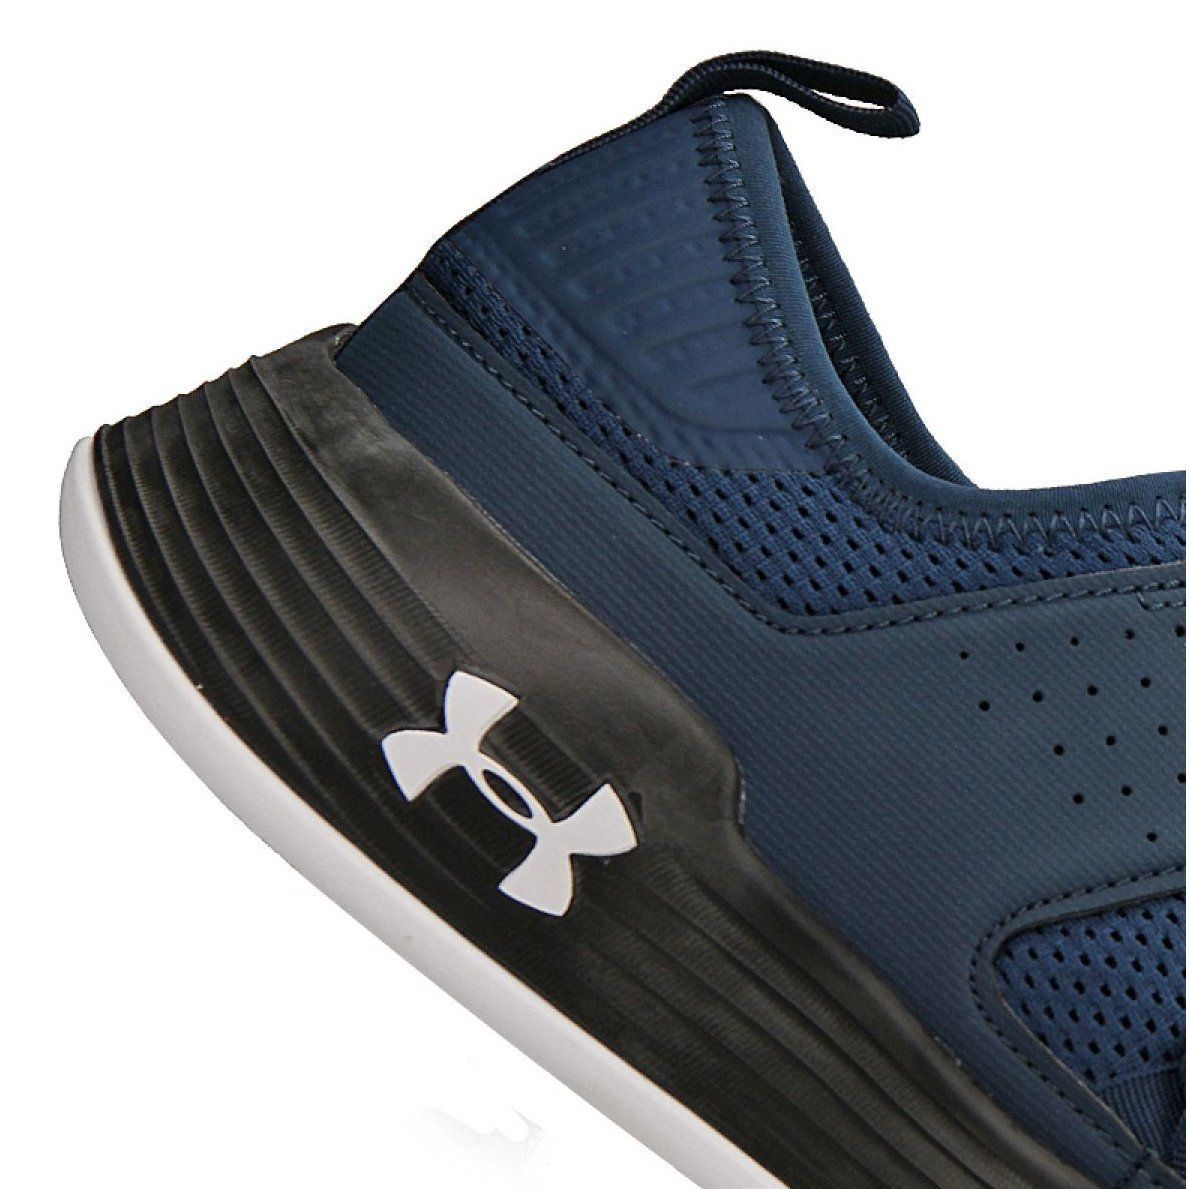 Buty Treningowe Under Armour Showstopper 2 0 M 3020542 414 Granatowe Training Shoes Under Armor Under Armour